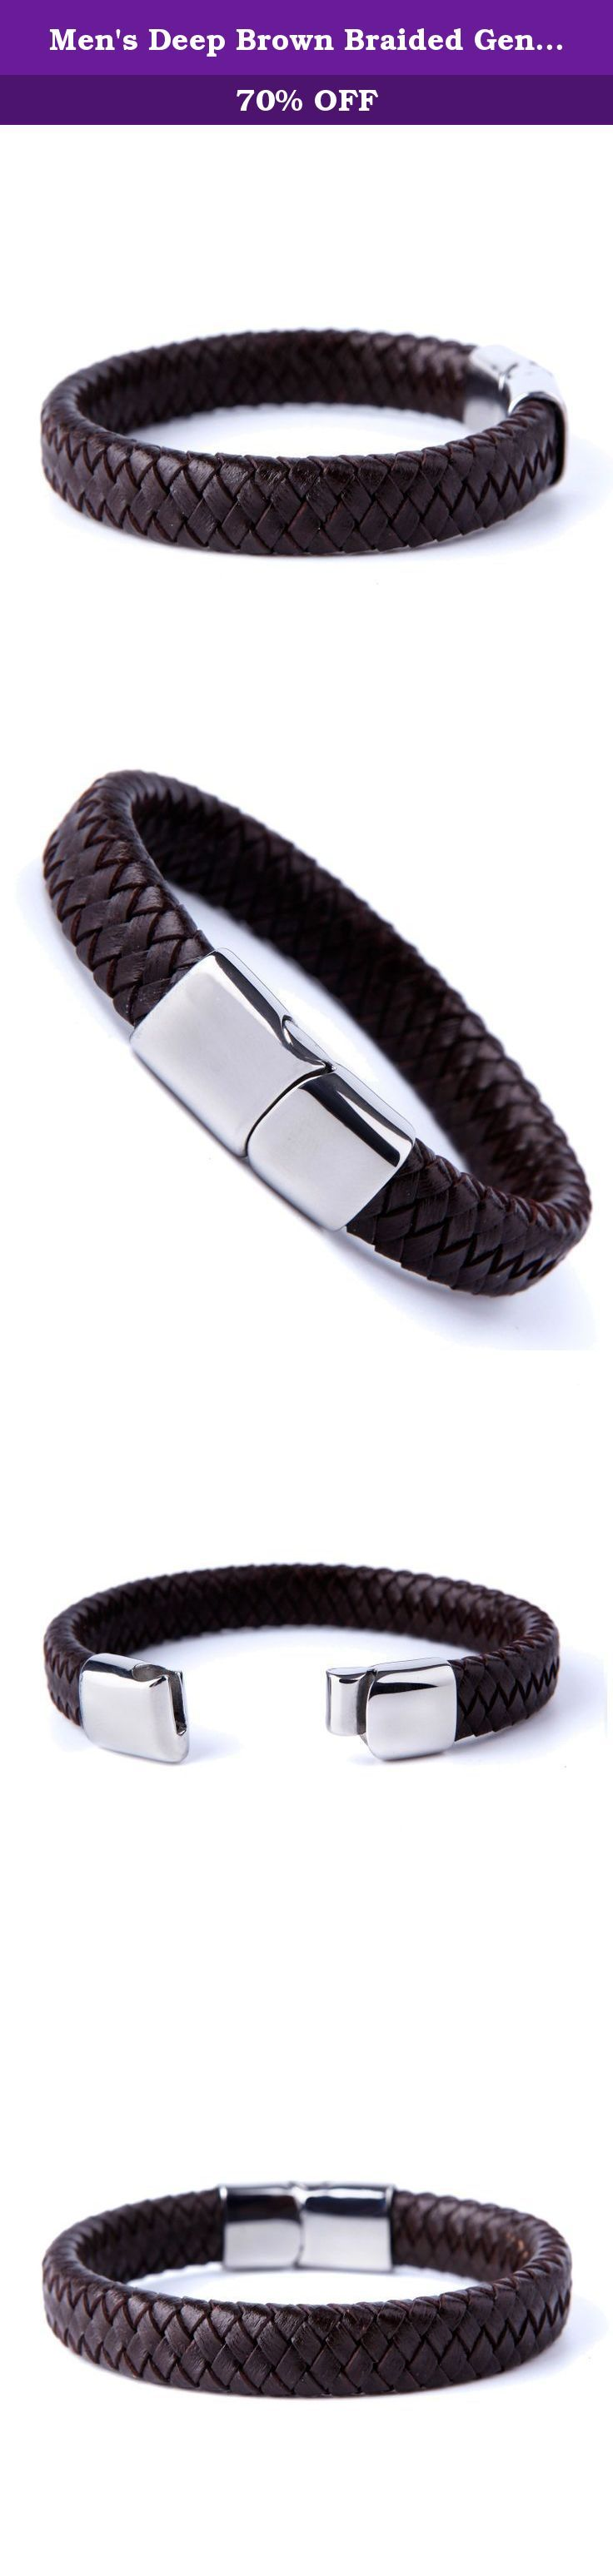 Men's Deep Brown Braided Genuine Leather Cuff Bracelet with Elegant 316L Stainless Steel Clasp. When you invest in a bracelet, the last thing you want is for it to fade from fashion fast. That's why the Urban Jewelry Men's Deep Brown Braided Genuine Leather Cuff Bracelet with Elegant Stainless Steel Clasp is the perfect piece to add to your jewelry collection! Its timeless look means it will always look fashion forward, and you can wear it for any occasion. The Urban Jewelry Men's Deep…